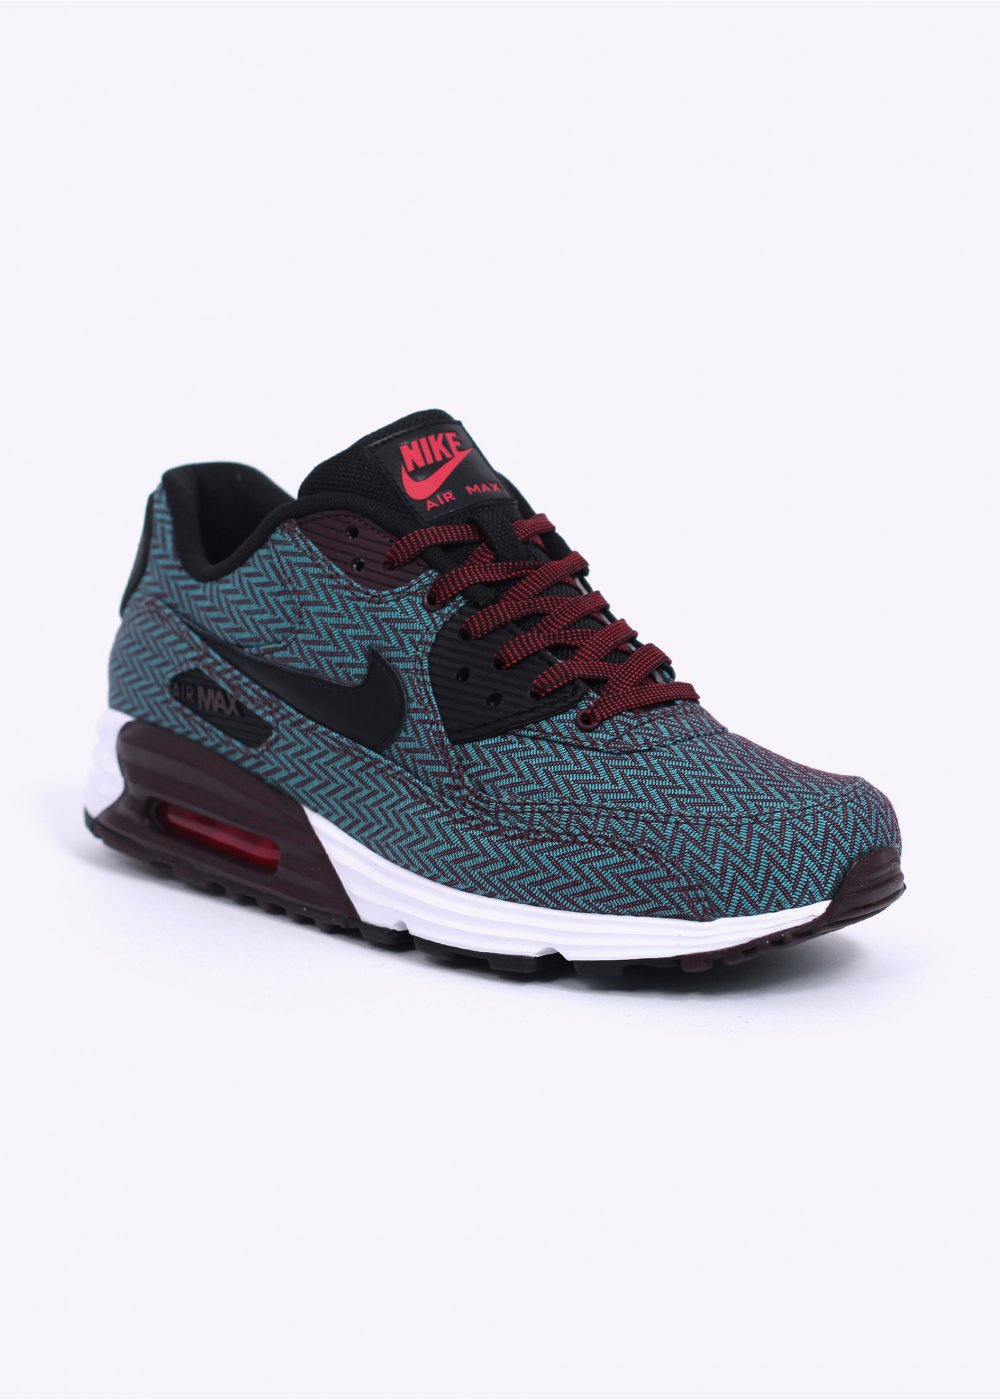 Air Max Lunar 90 'Suit & Tie' PRM